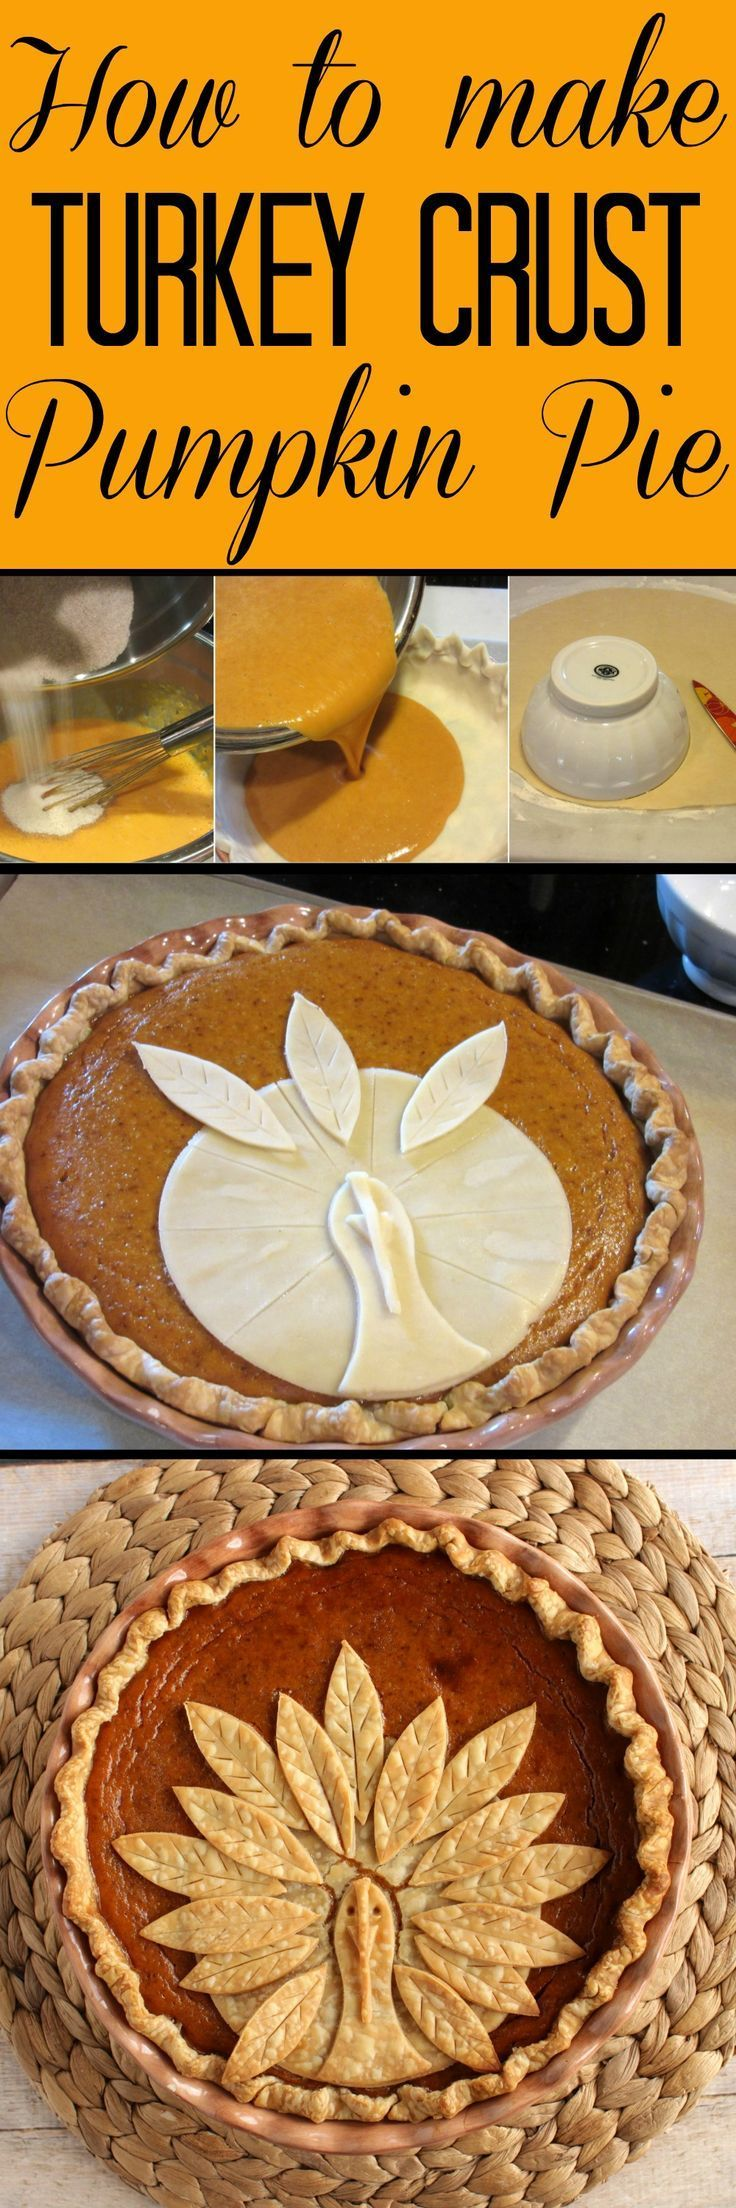 This Adorable Turkey Crust Pumpkin Pie is easy to recreate and will amaze your family and friends this holiday season. Let me show you how easy it is to assemble, and bake this fun holiday treat. - Kudos Kitchen by Renee - http://kudoskitchenbyrenee.com #PumpkinWeek